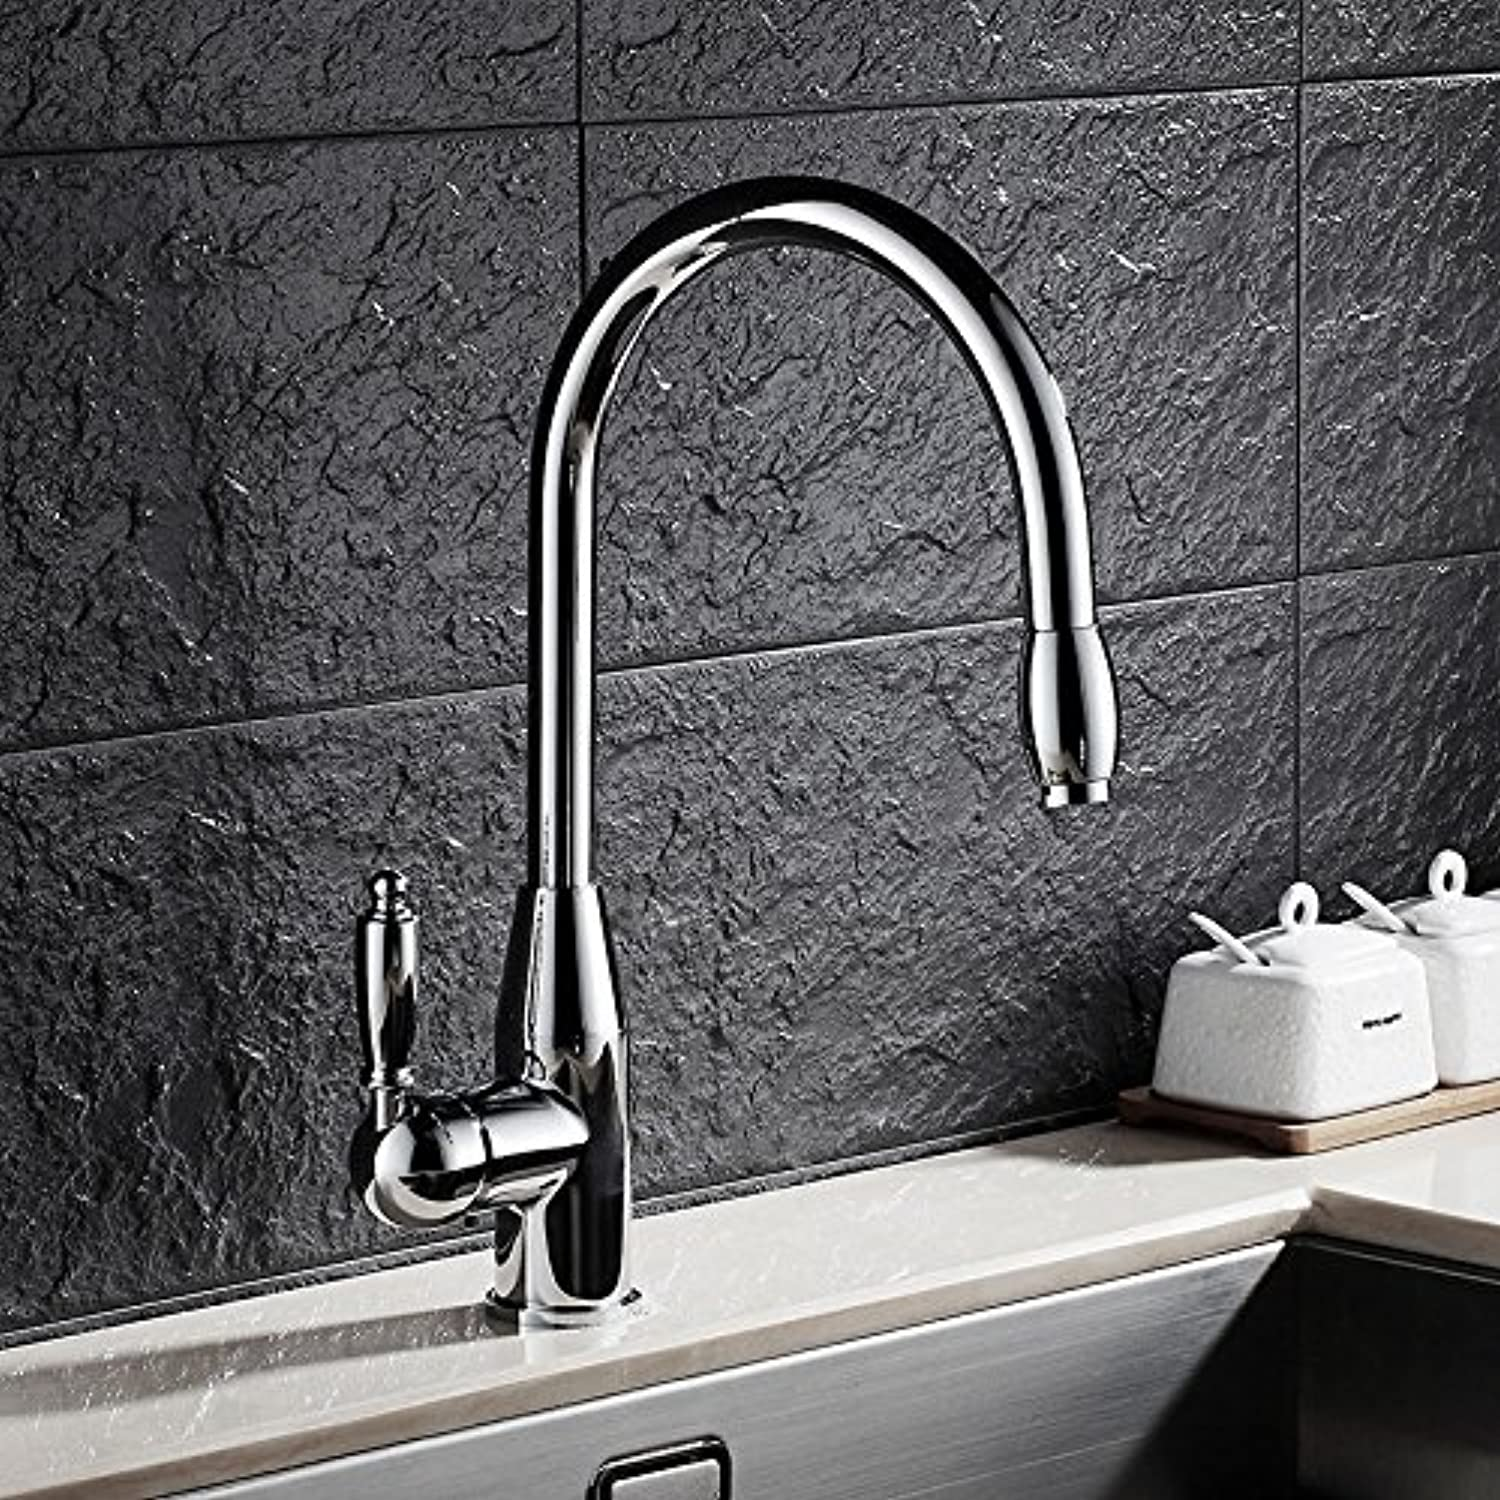 LHS European hot and cold sink faucet redated kitchen sink faucet